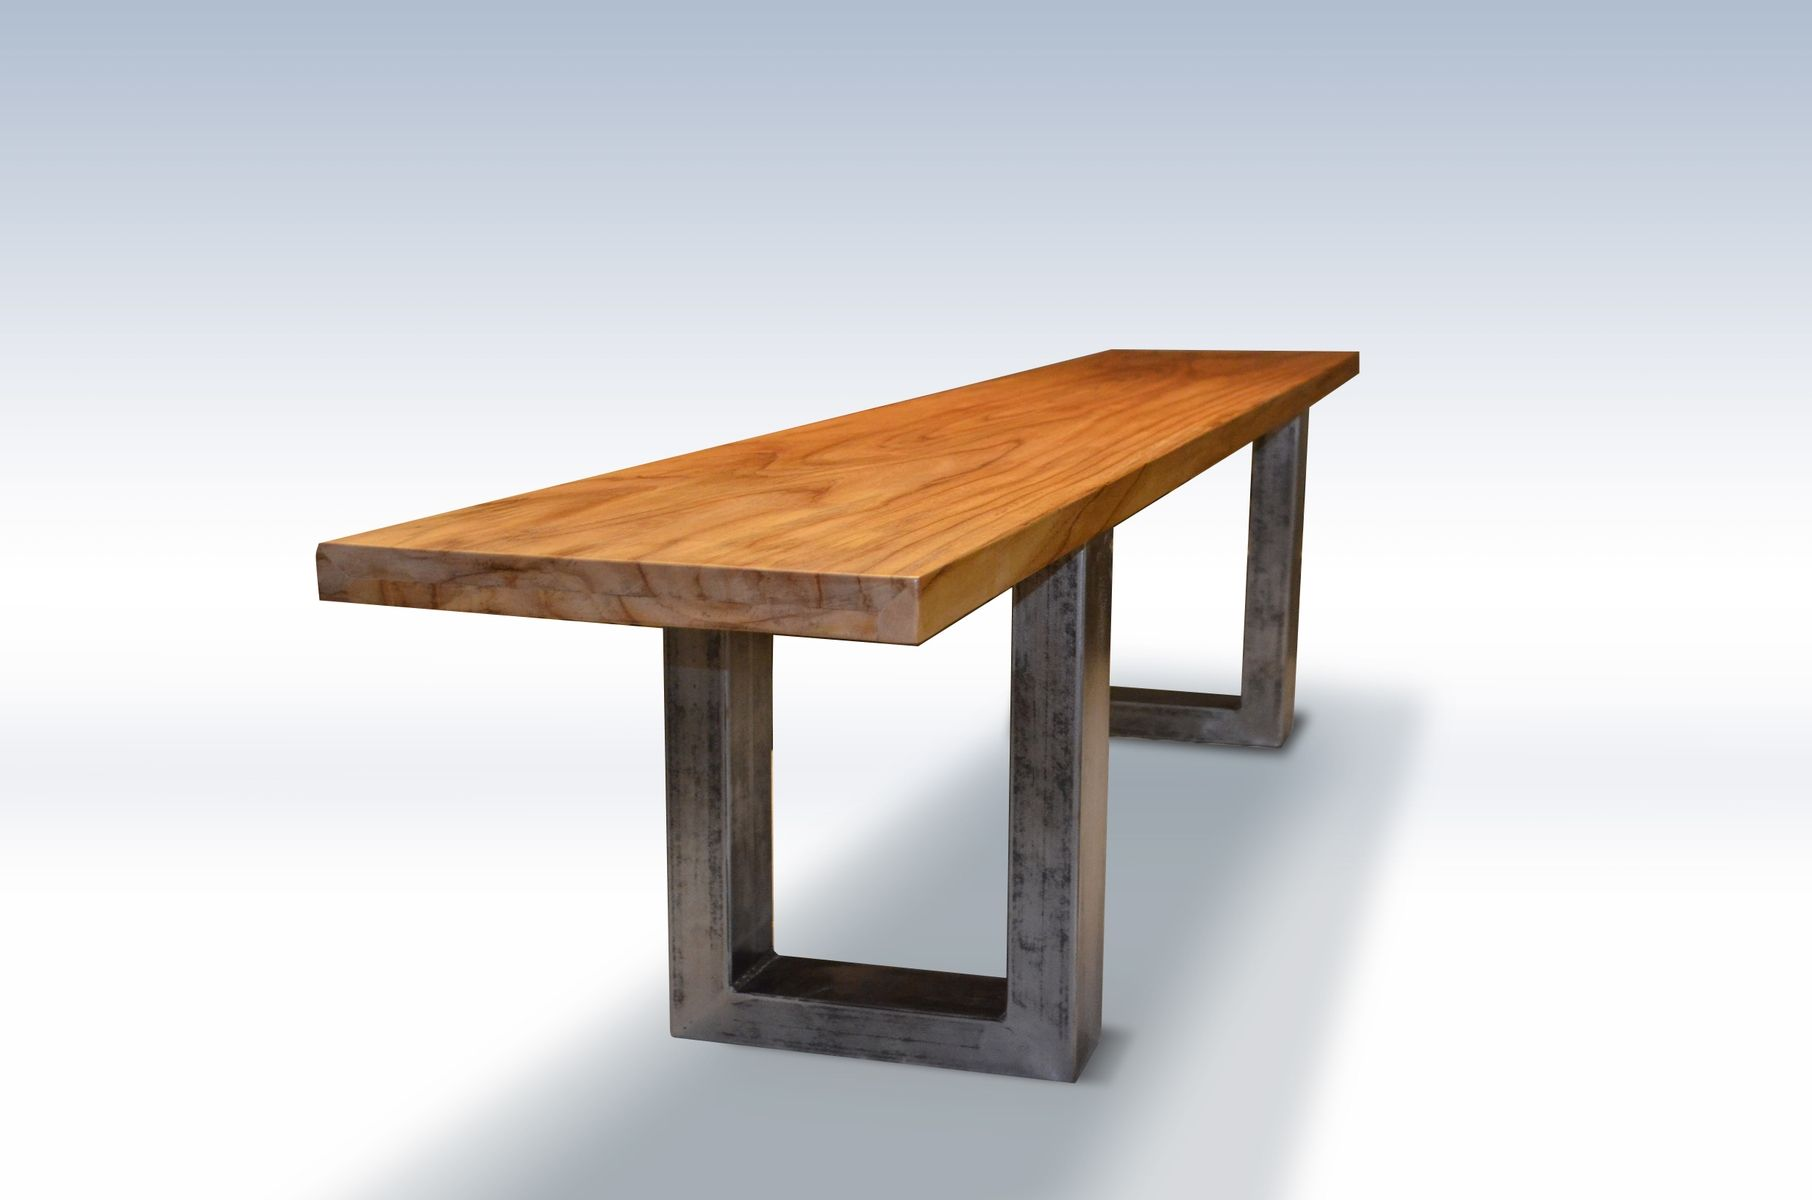 Buy Hand Made Modern Teak Bench With Metal Legs Made To Order From Abodeacious